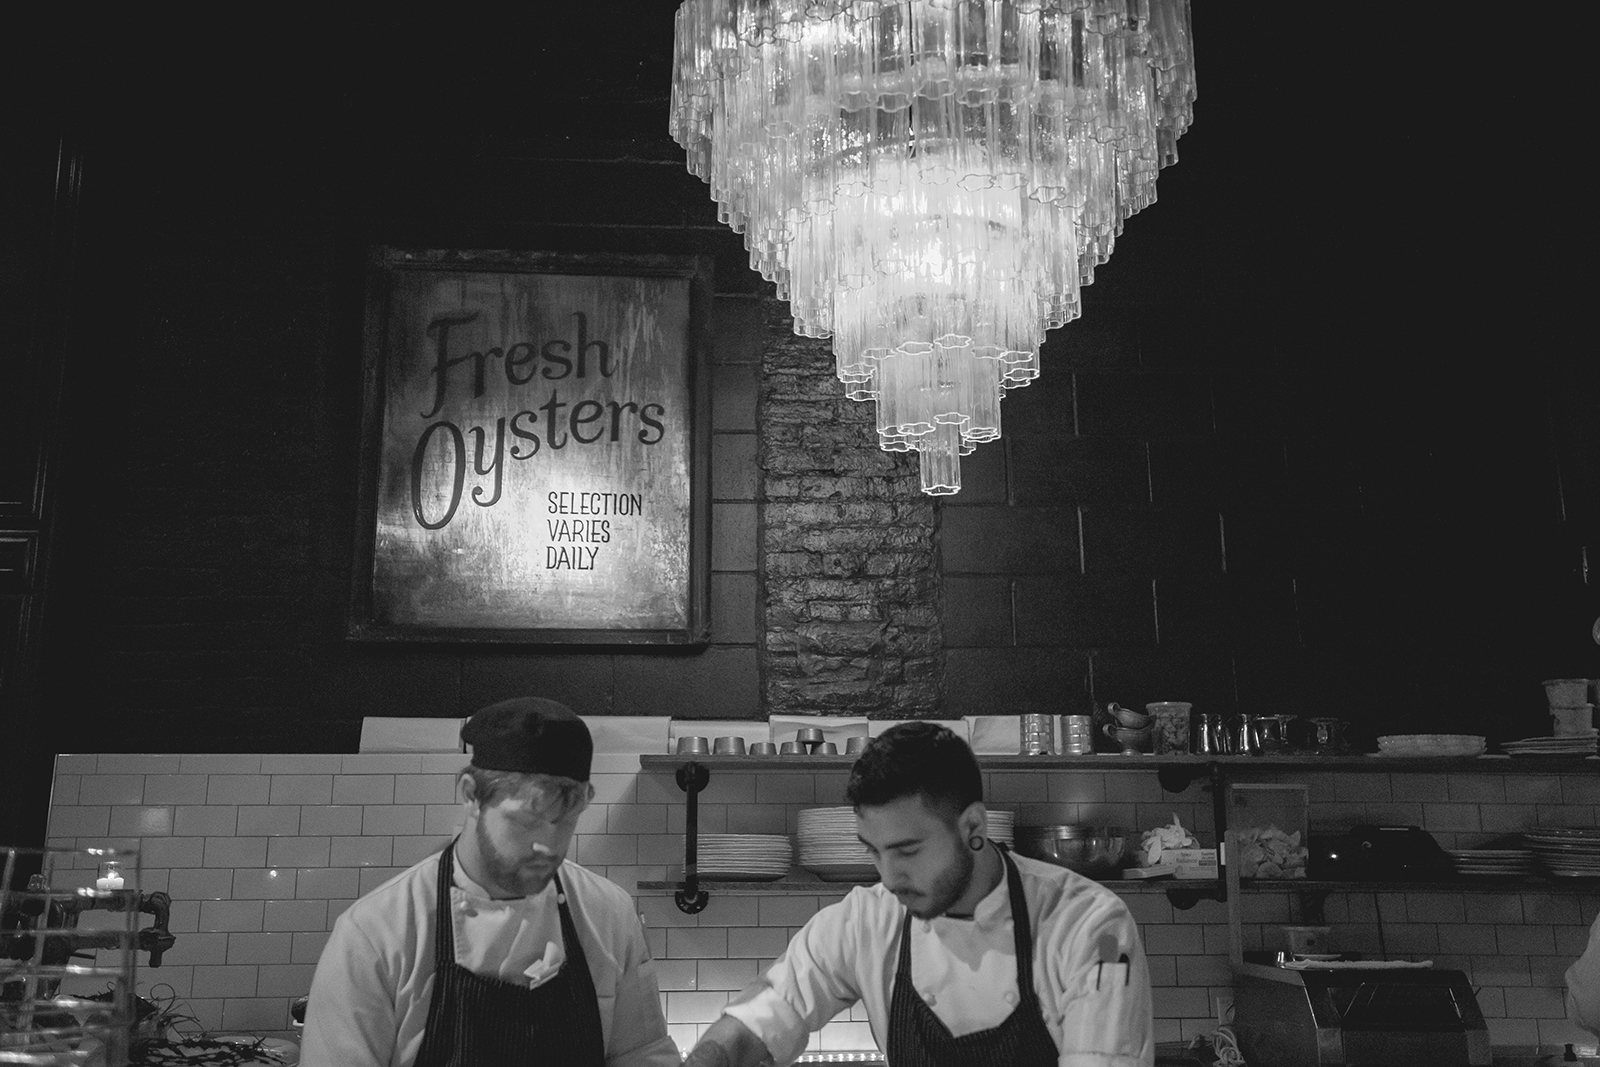 Oyster chefs